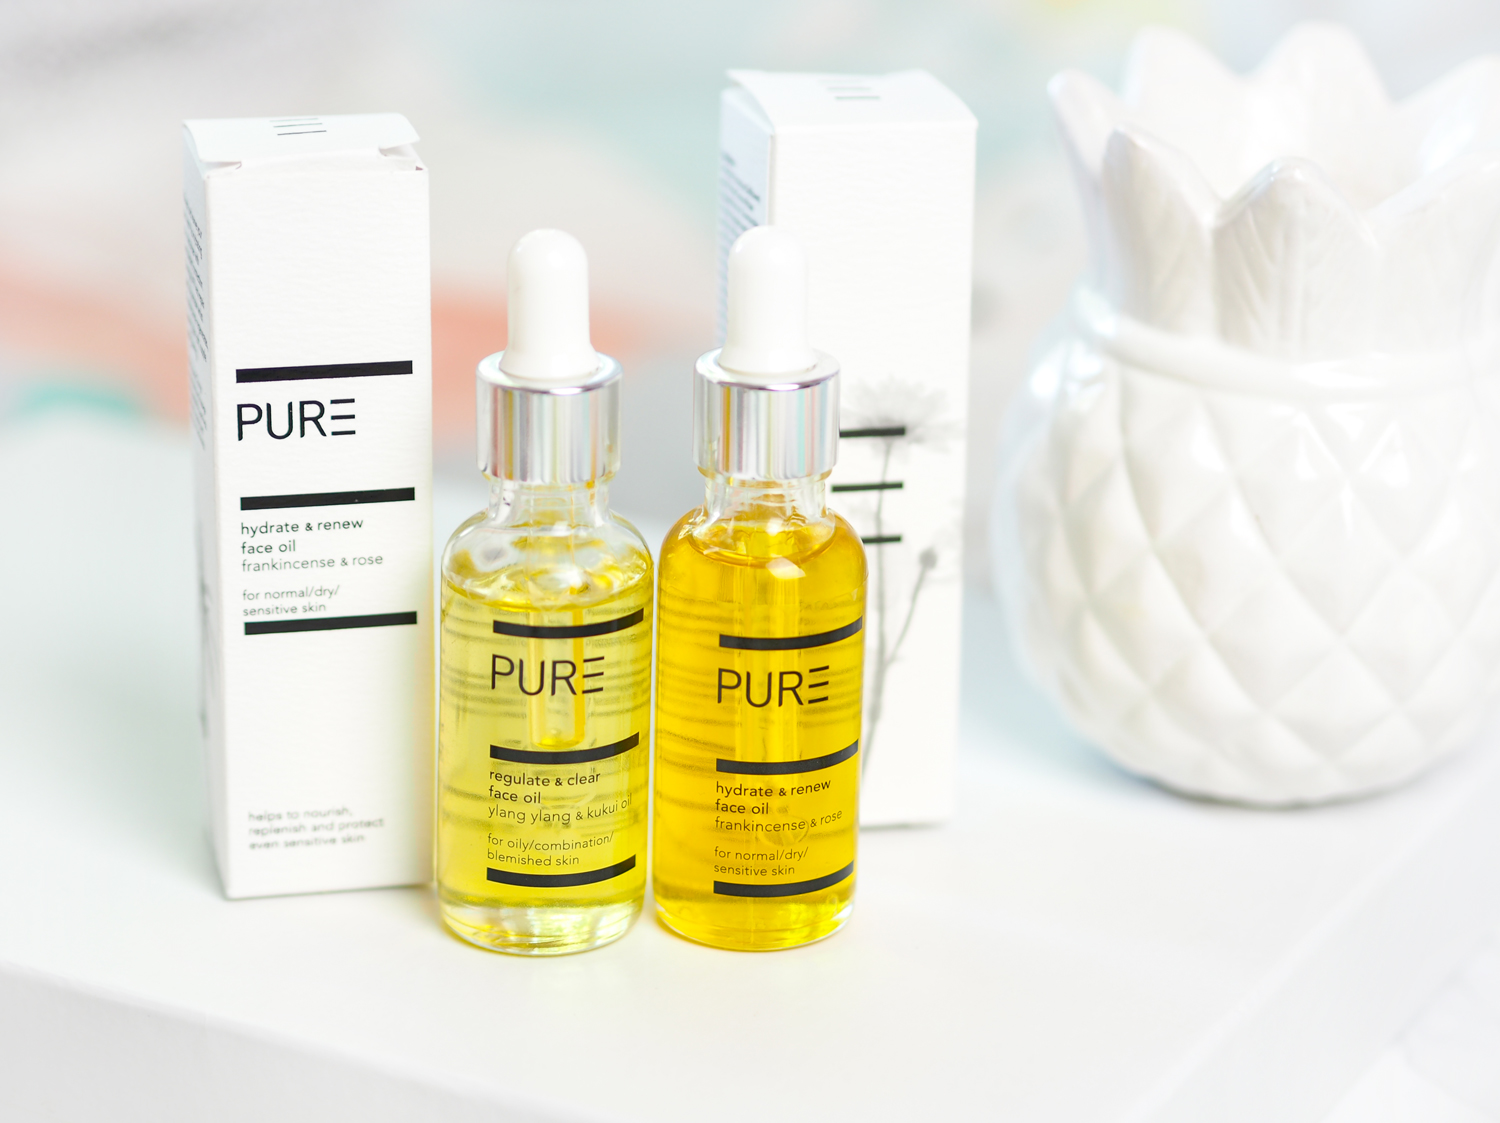 PURE Spa & Beauty Skincare